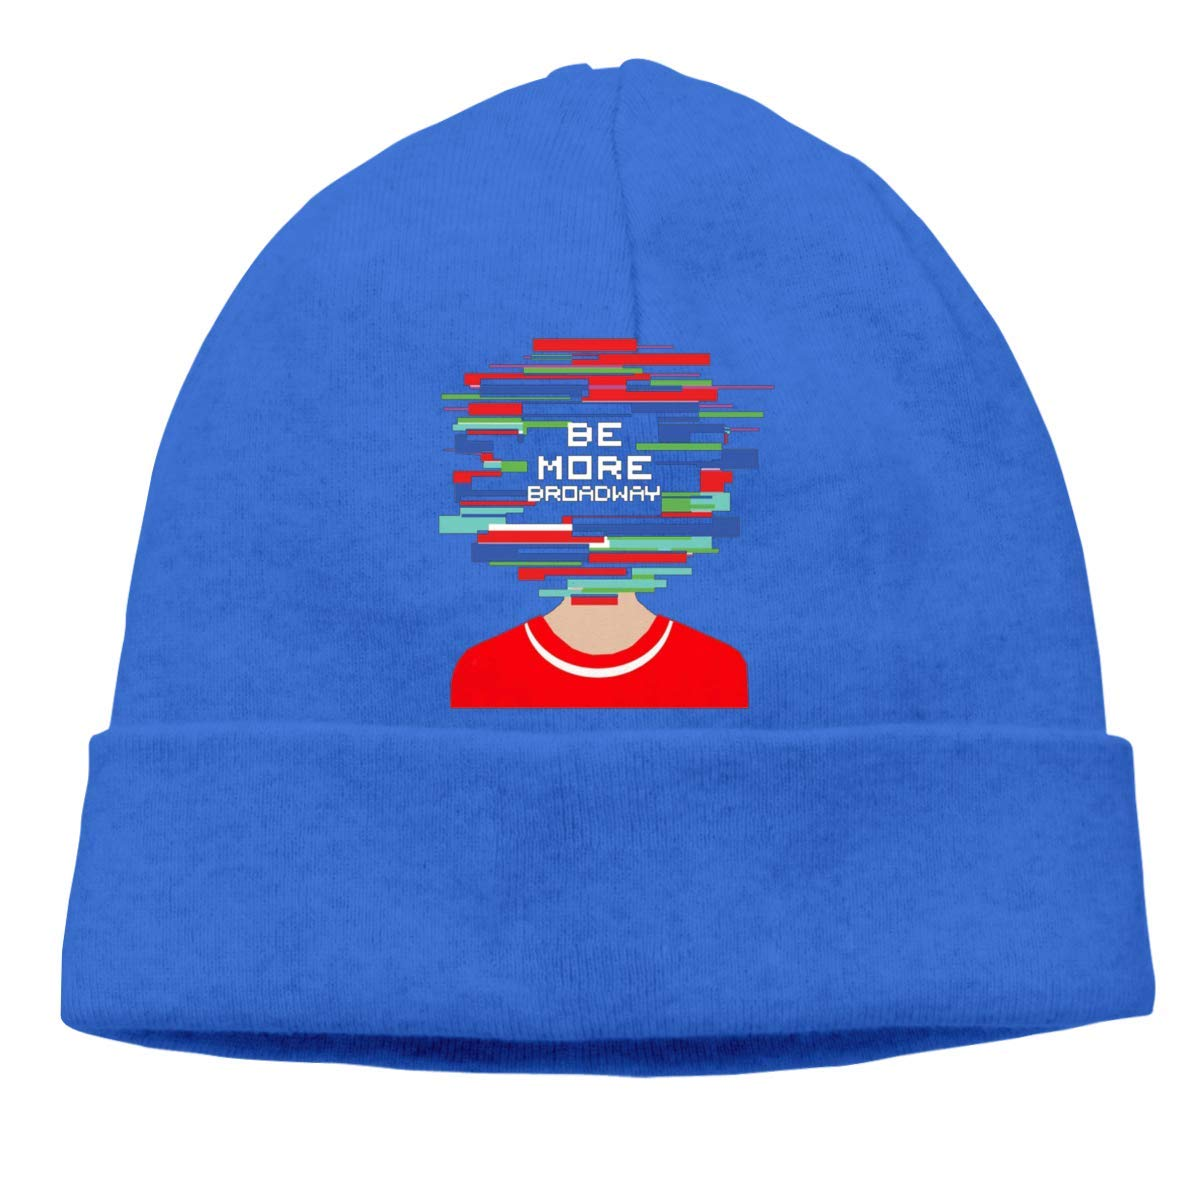 Dama Home Be More Chill Be More Broadway Beanie Men Women - Unisex ...